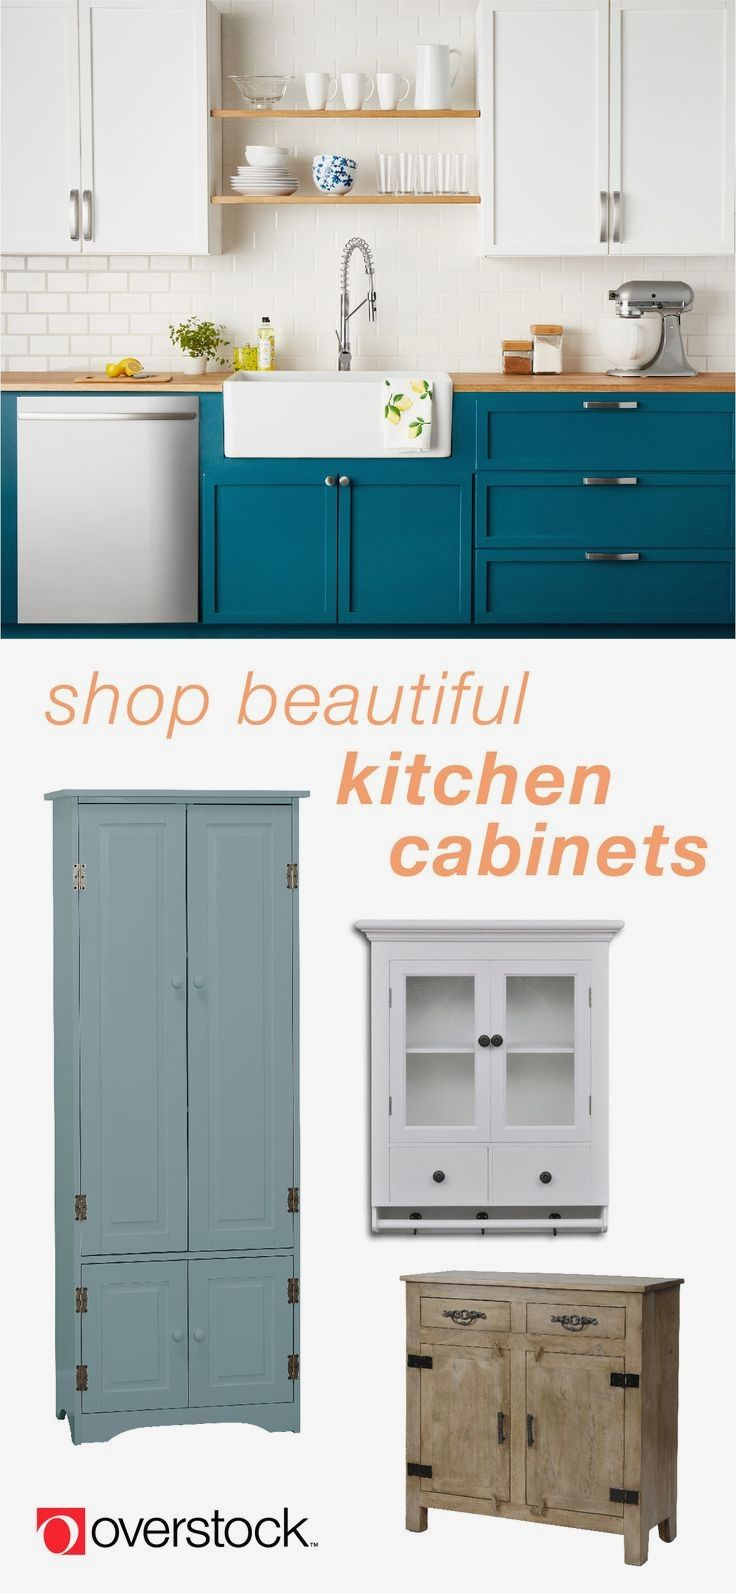 The Basics of Buying Kitchen Cabinets - CHECK THE PICTURE for Lots ...